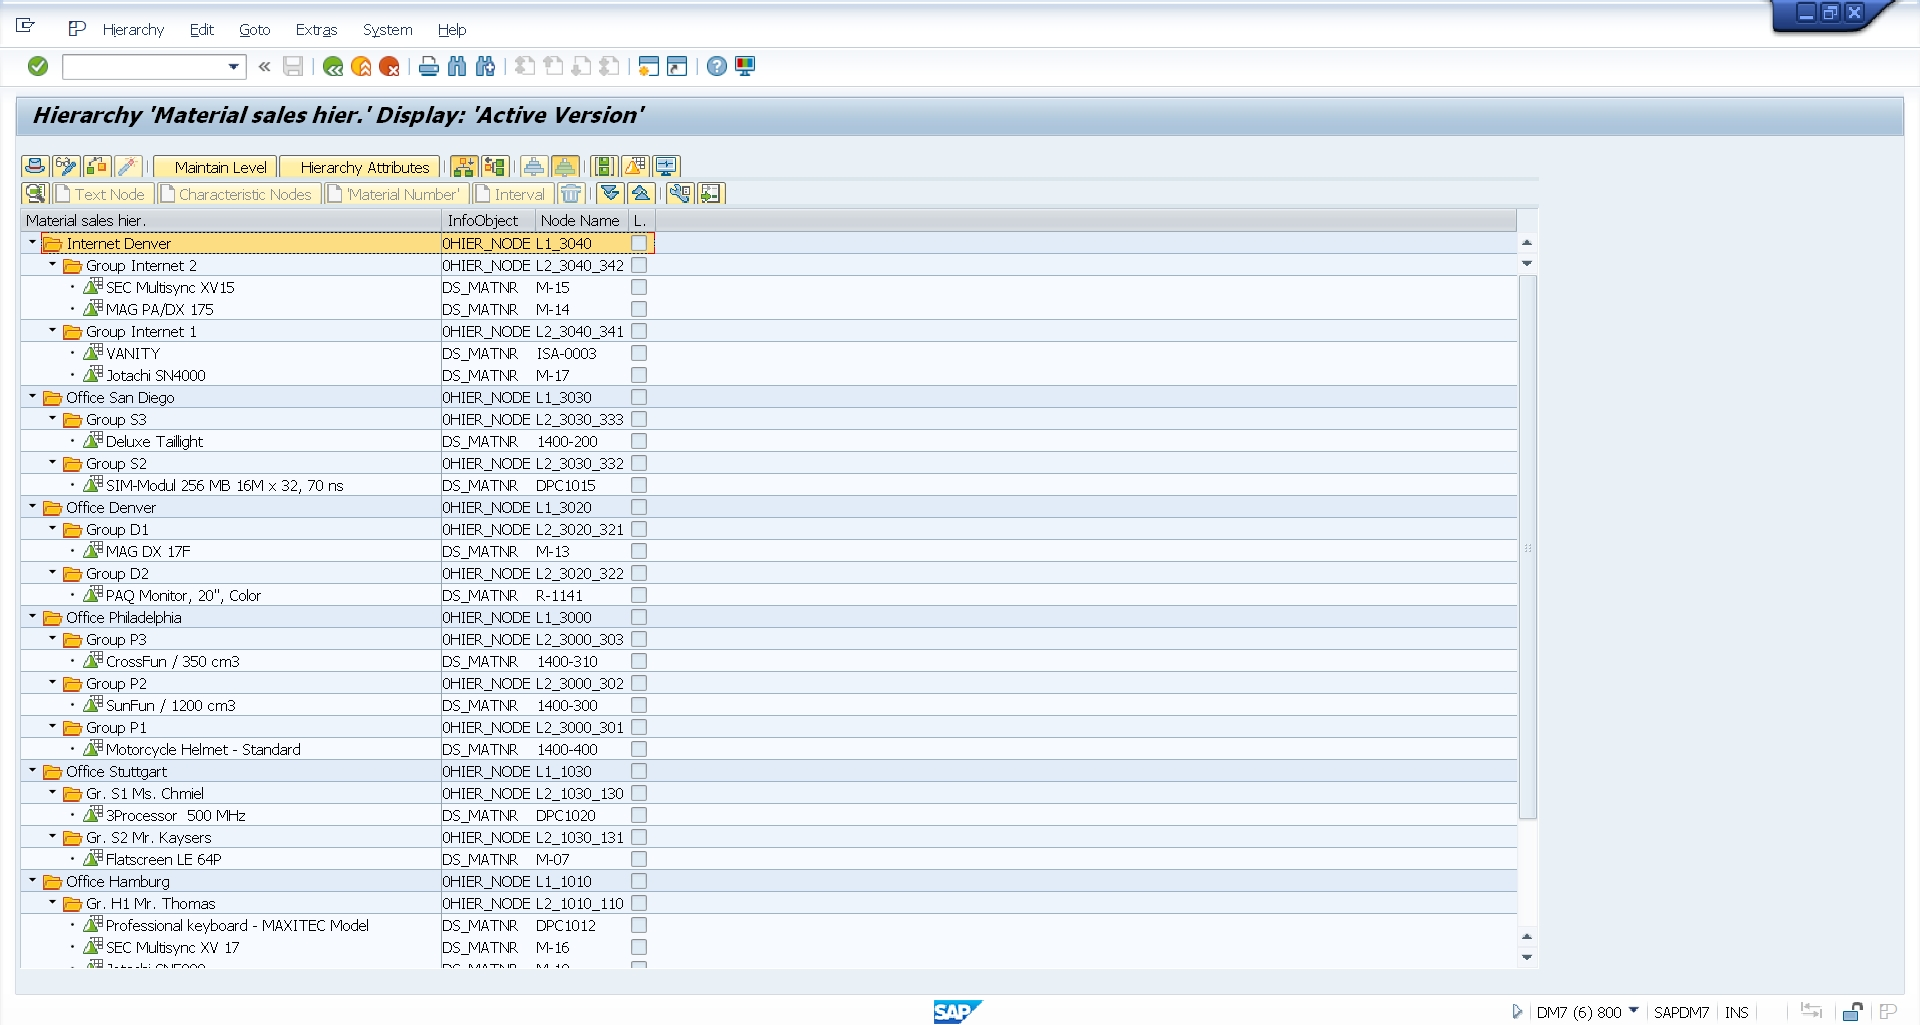 SAP BW Data Extraction with hierarchy flattening - VirtDB